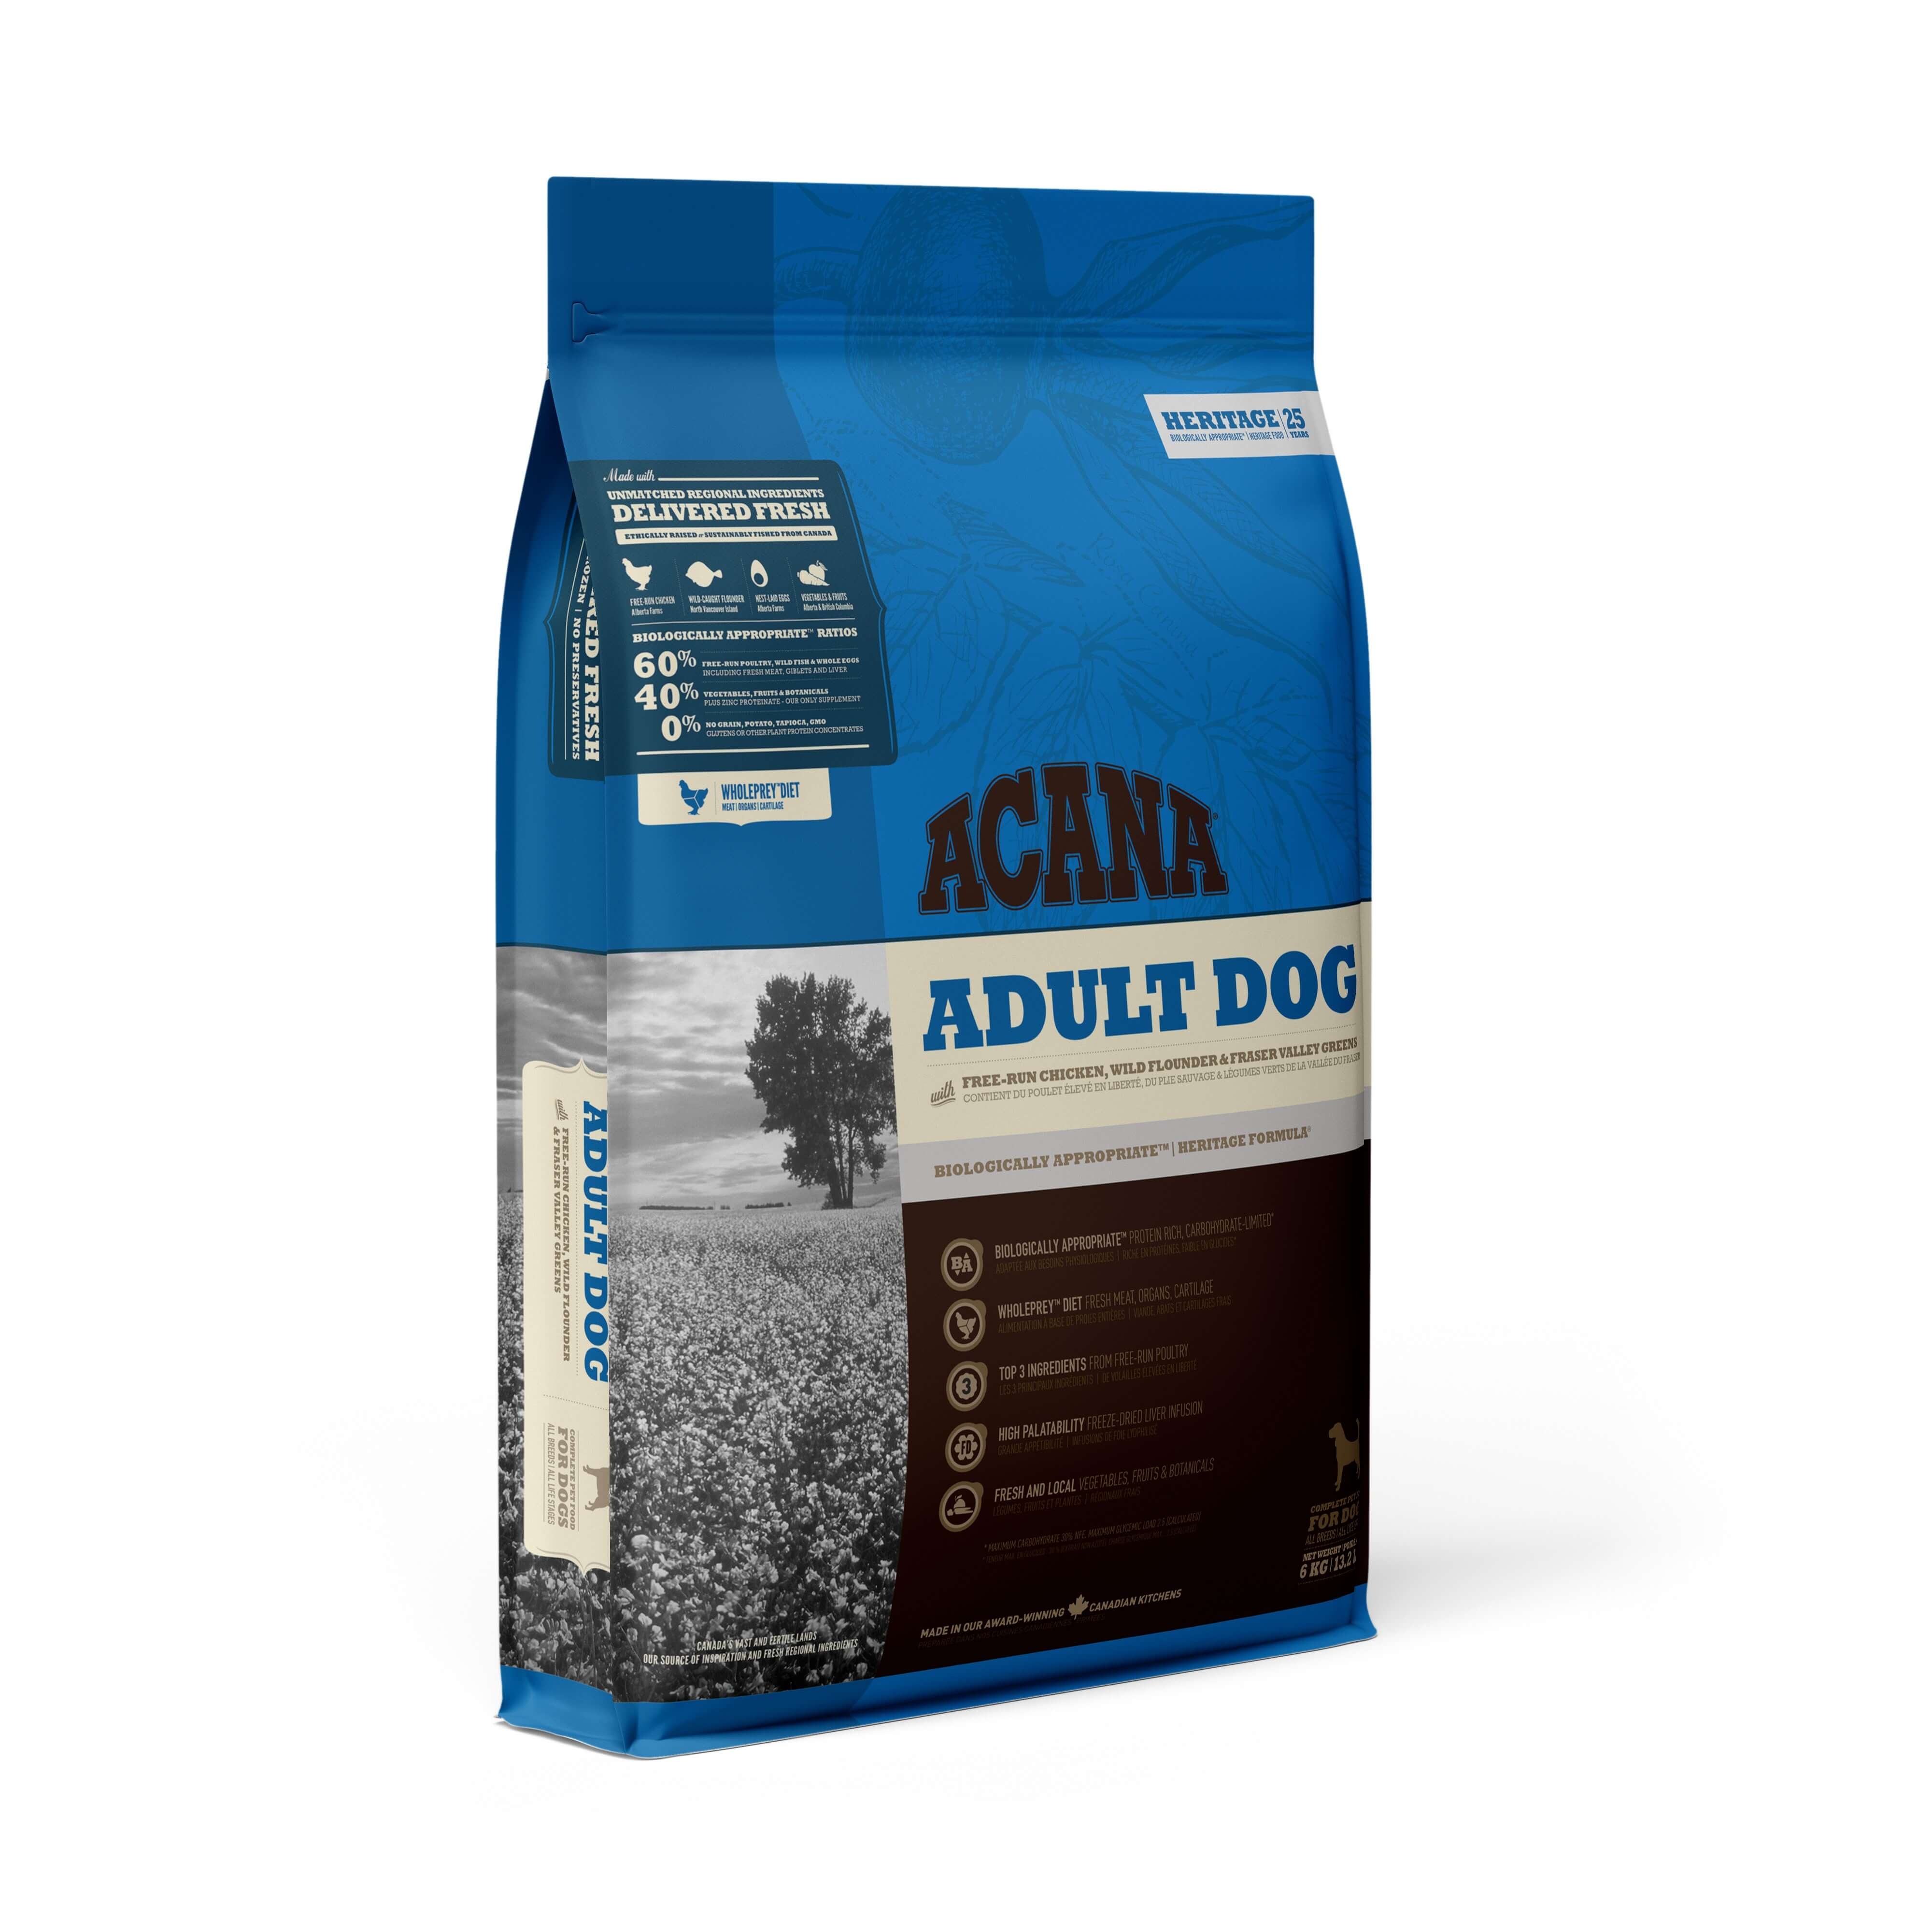 Acana Adult Dog | 340gm - Click to enlarge picture.